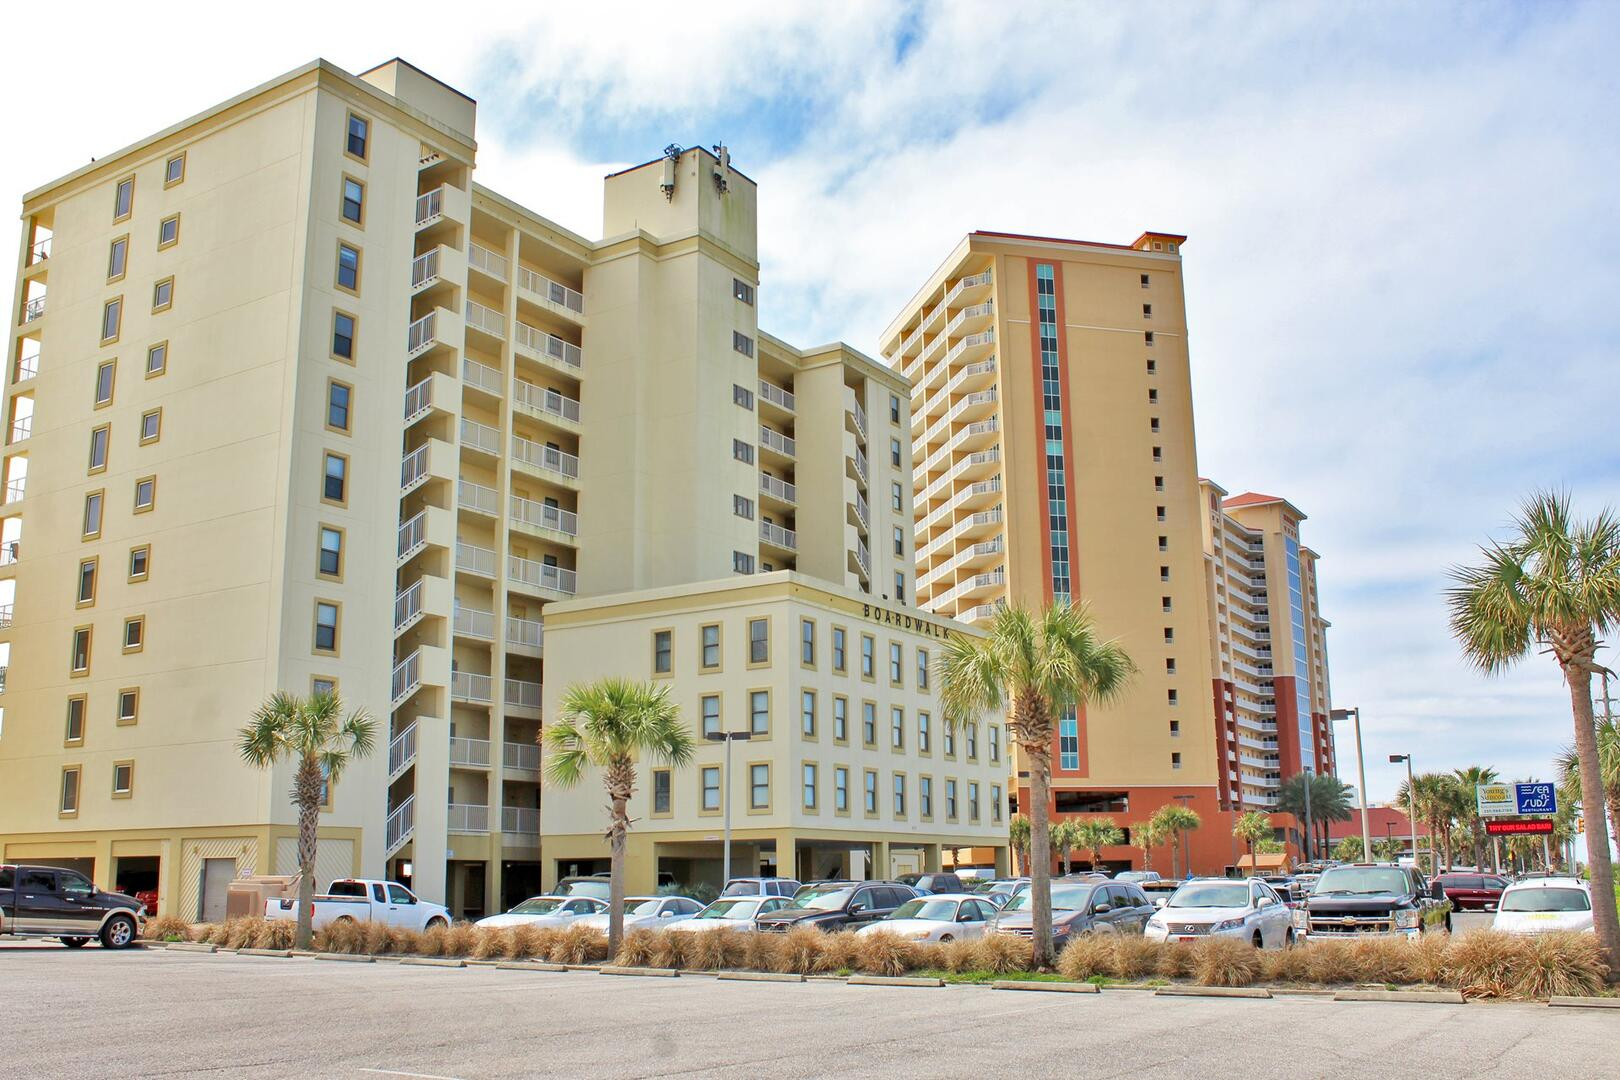 409 East Beach Blvd., Gulf Shores, AL.